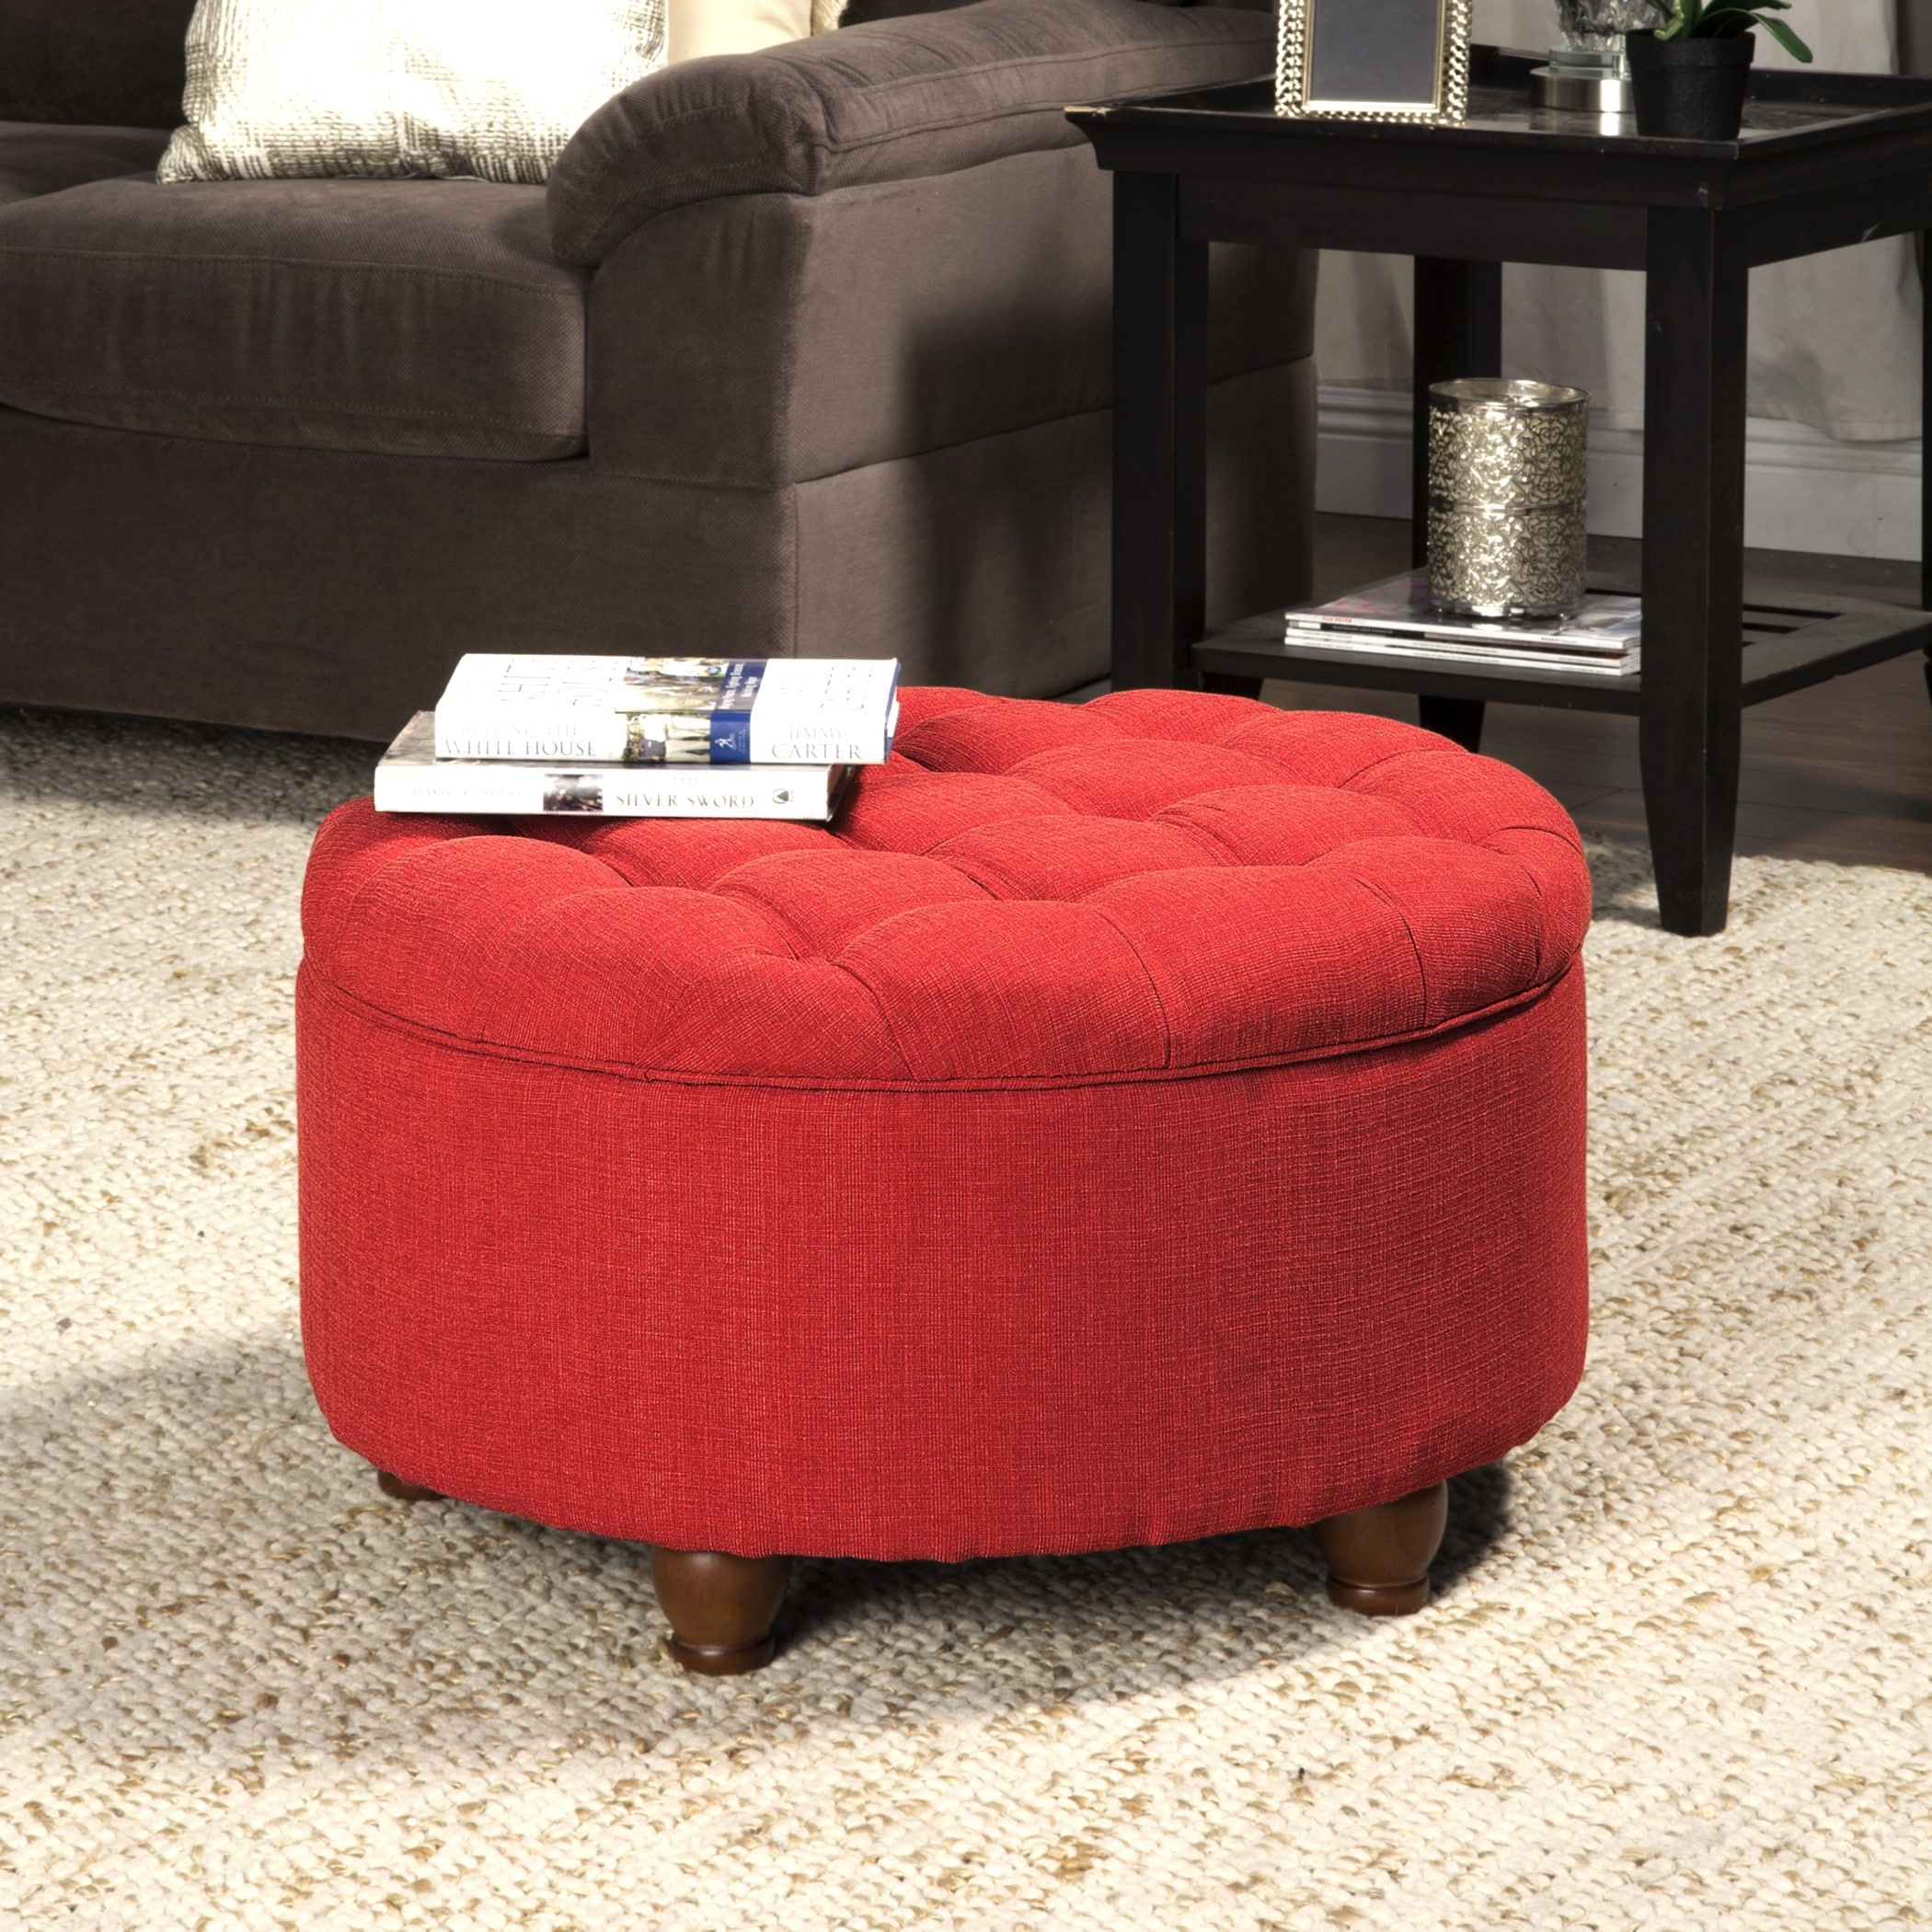 Astounding Porch Den Leaf Red Tufted Round Cocktail Storage Ottoman Pabps2019 Chair Design Images Pabps2019Com